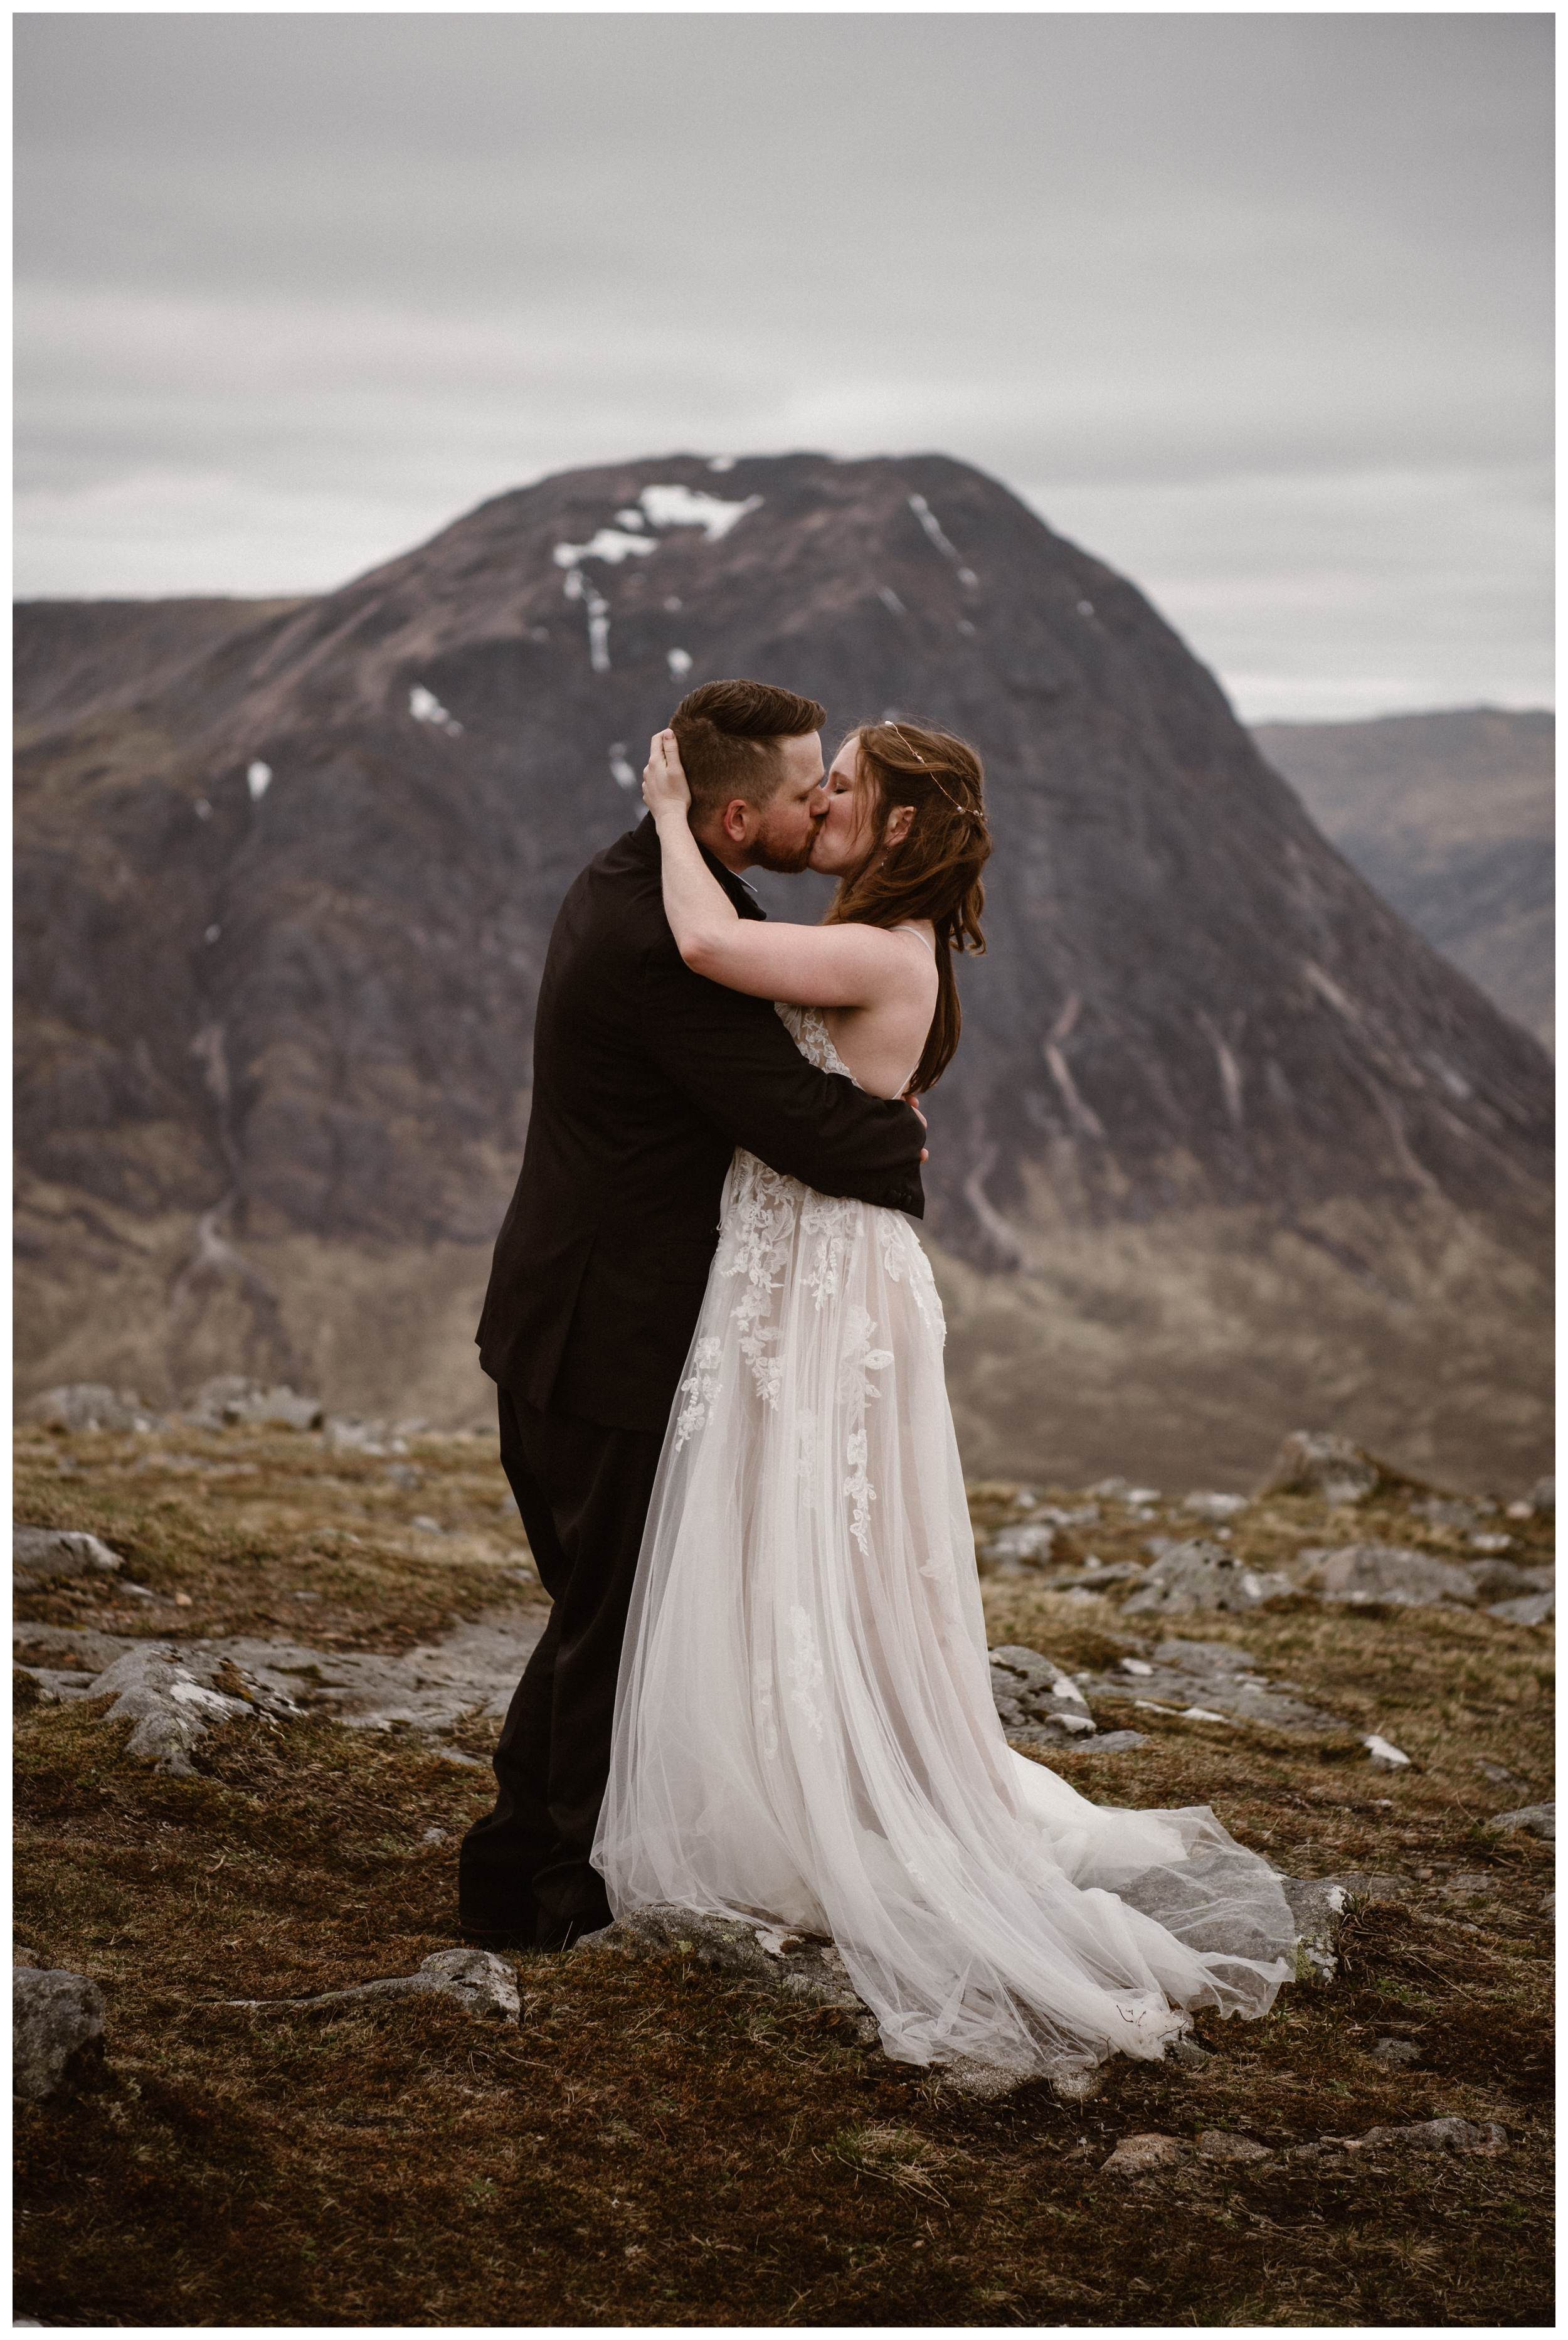 Elissa and Daniel share their first kiss after their self solemnizing elopement ceremony in the Scottish Highlands. Photo by Maddie Mae, Adventure Instead.